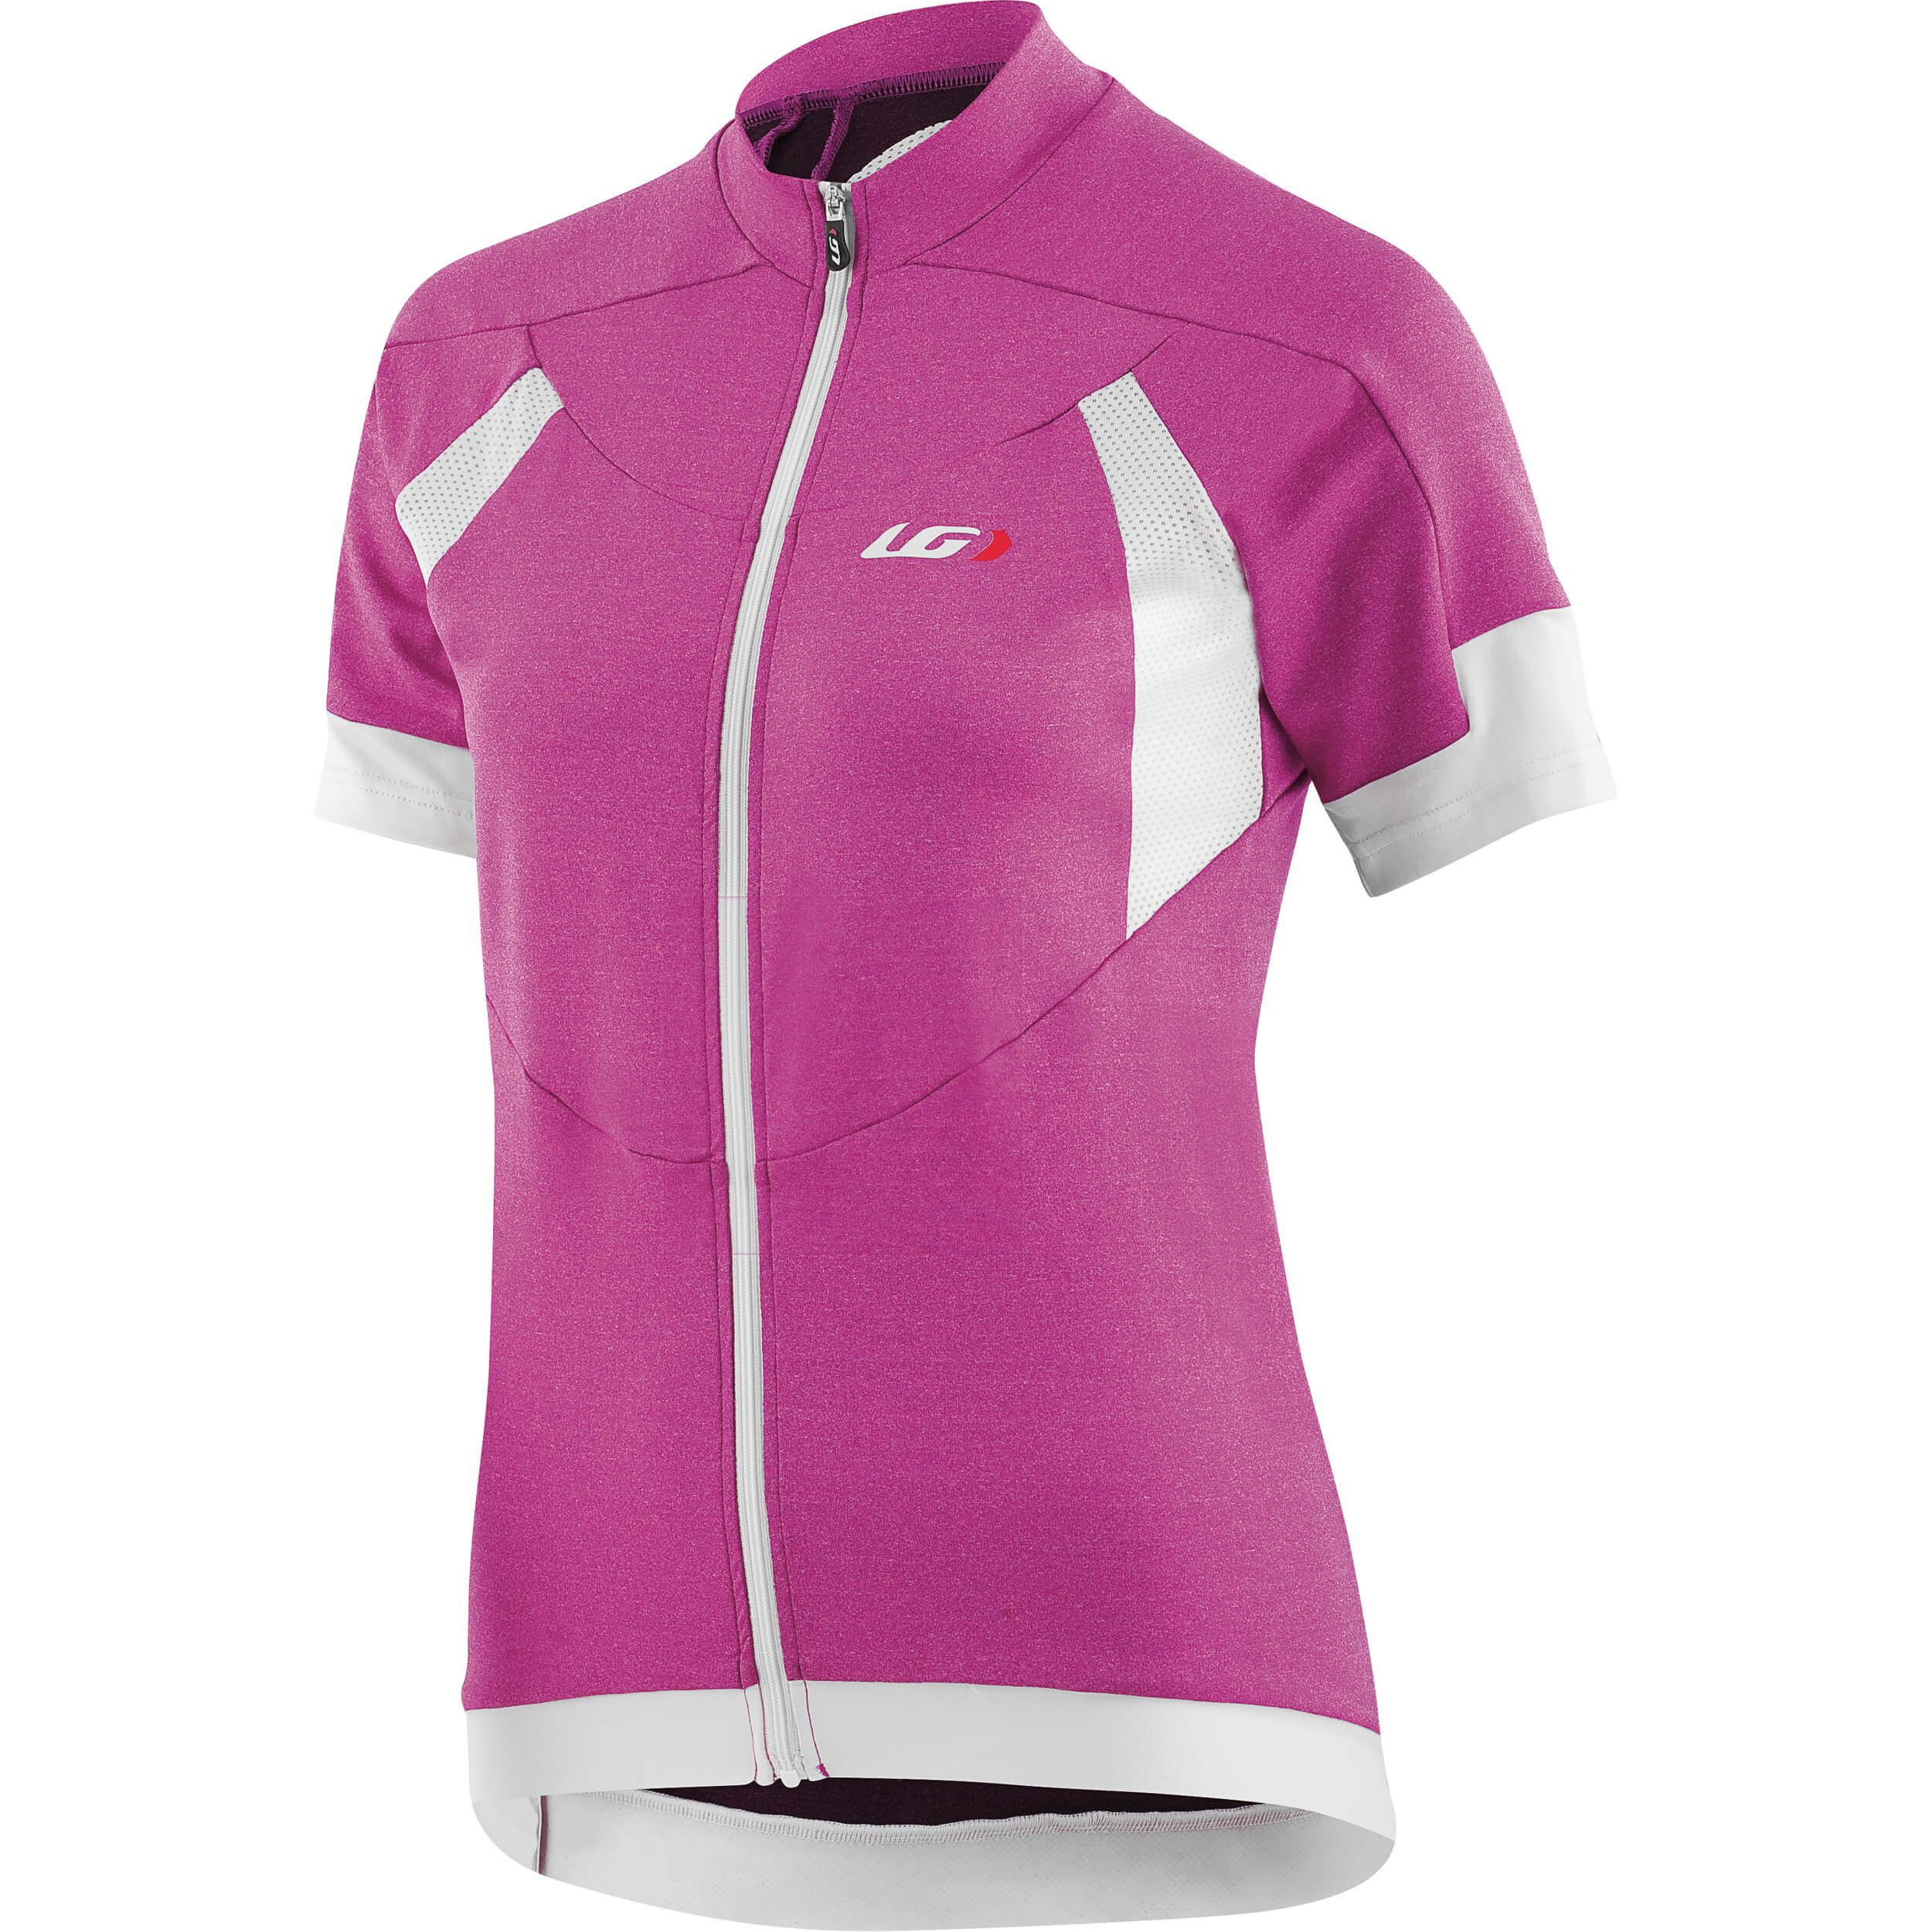 7b2fabac83 Women s Icefit Cycling Jersey. Tap to expand